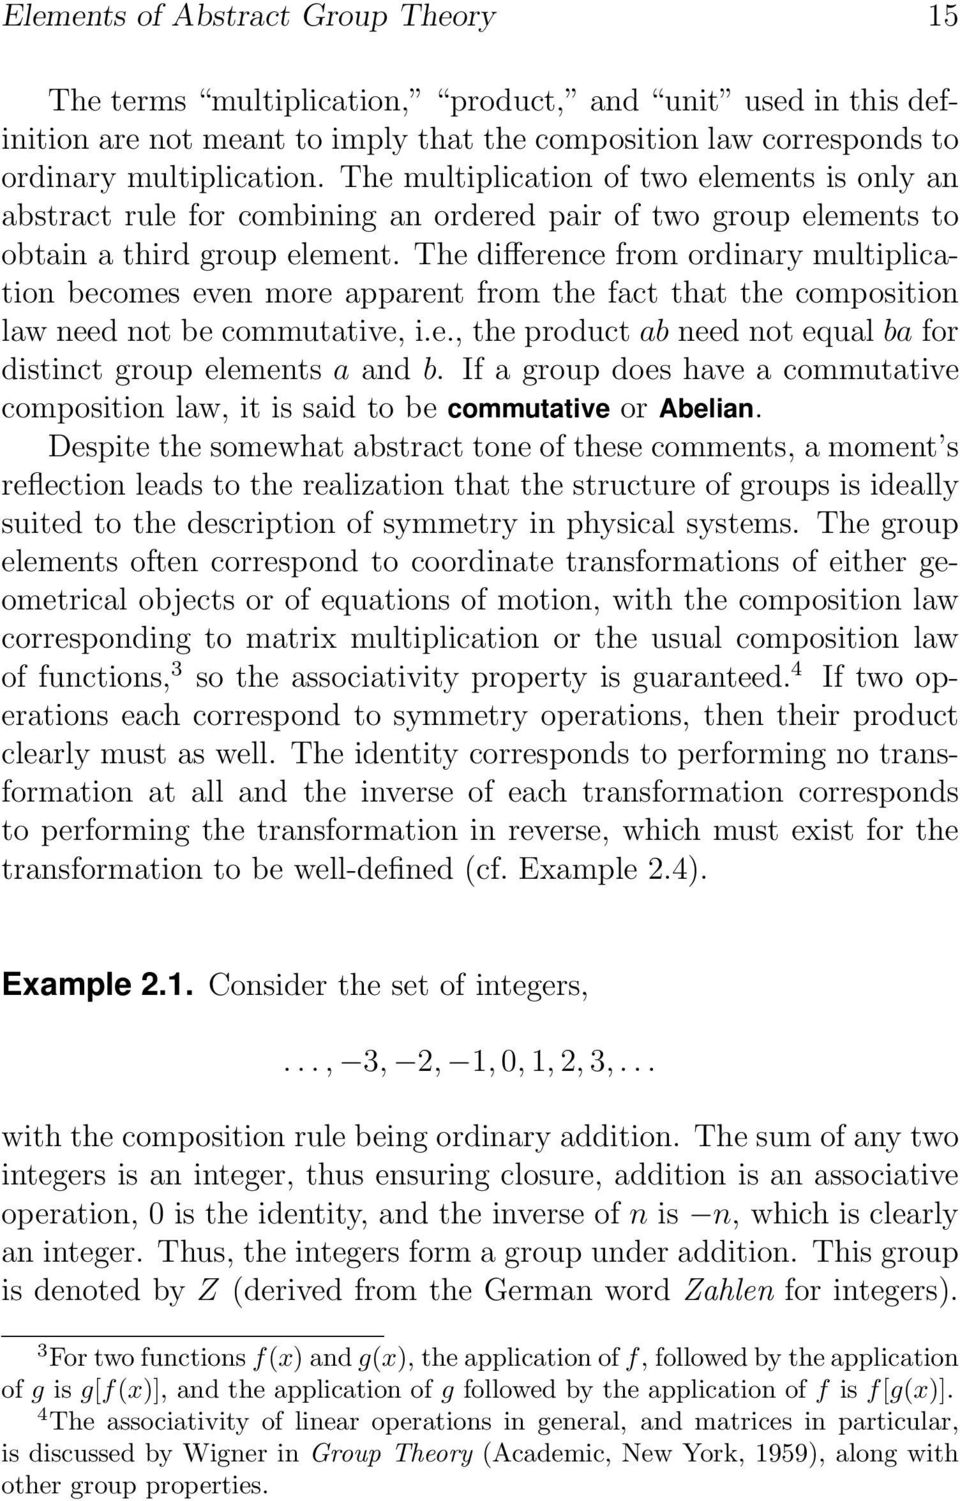 The difference from ordinary multiplication becomes even more apparent from the fact that the composition law need not be commutative, i.e., the product ab need not equal ba for distinct group elements a and b.